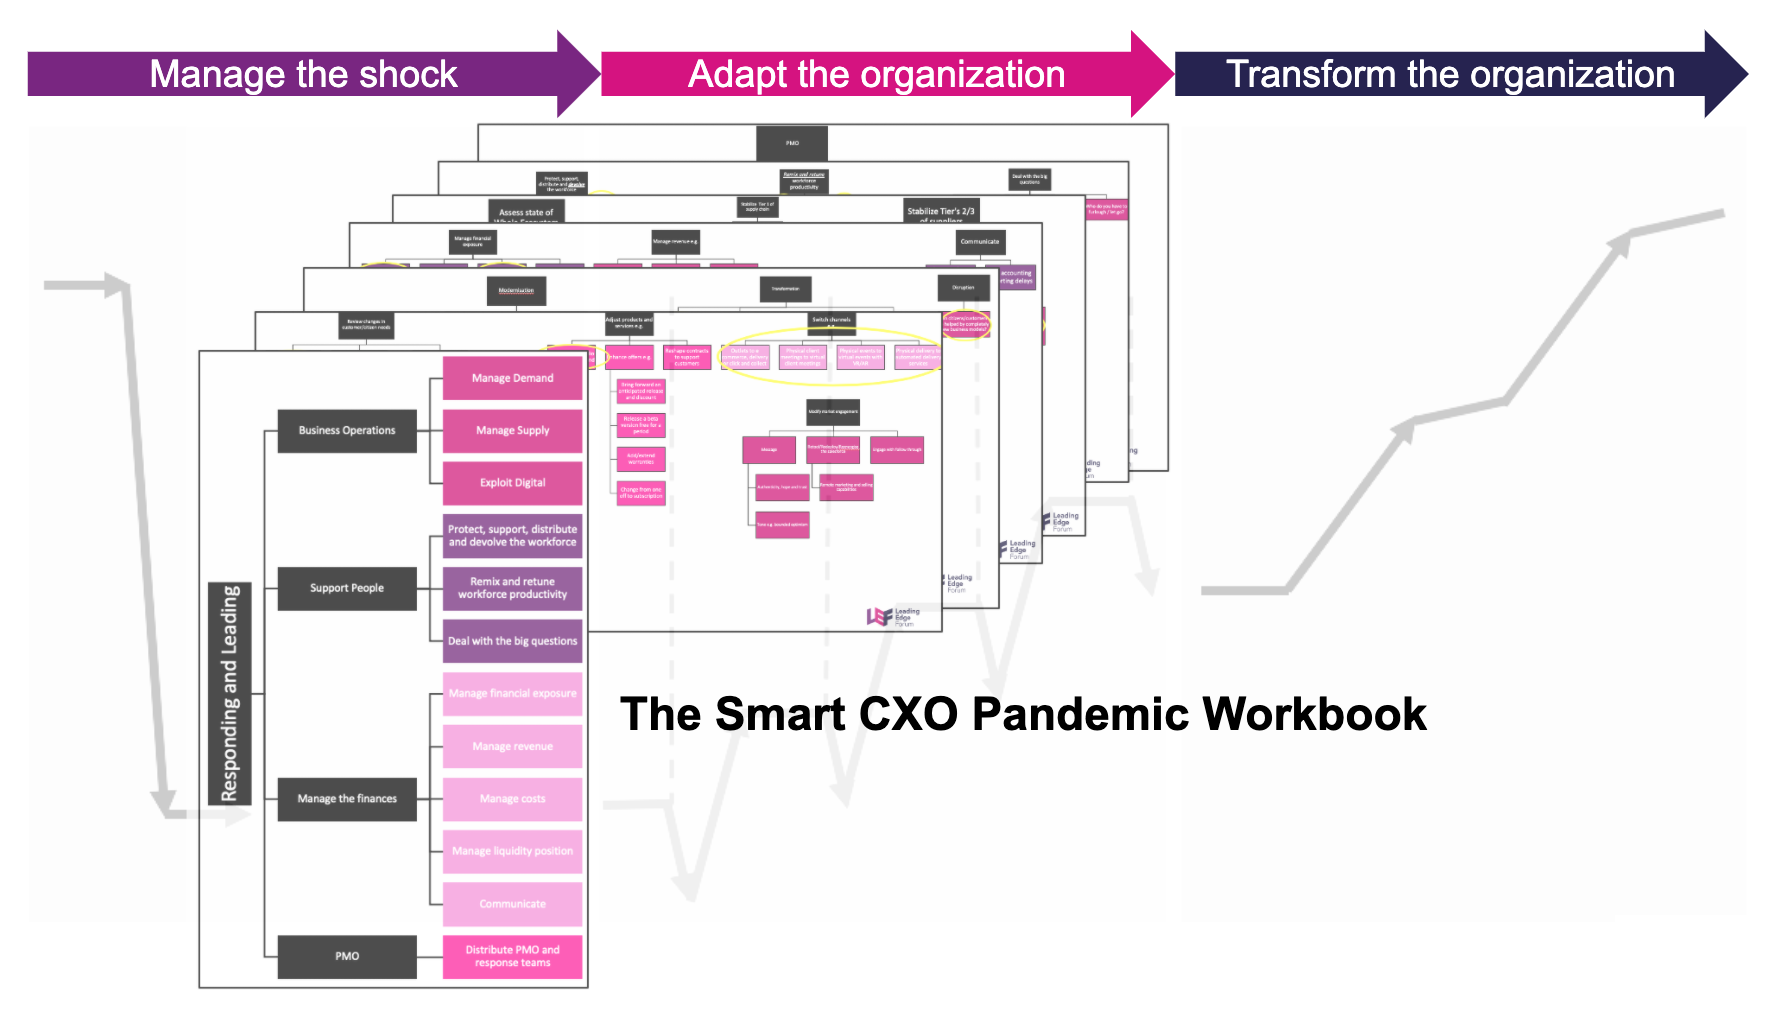 Figure 5 – While managing the shock, smart CXOs should create options for civic progress & competitive advantage